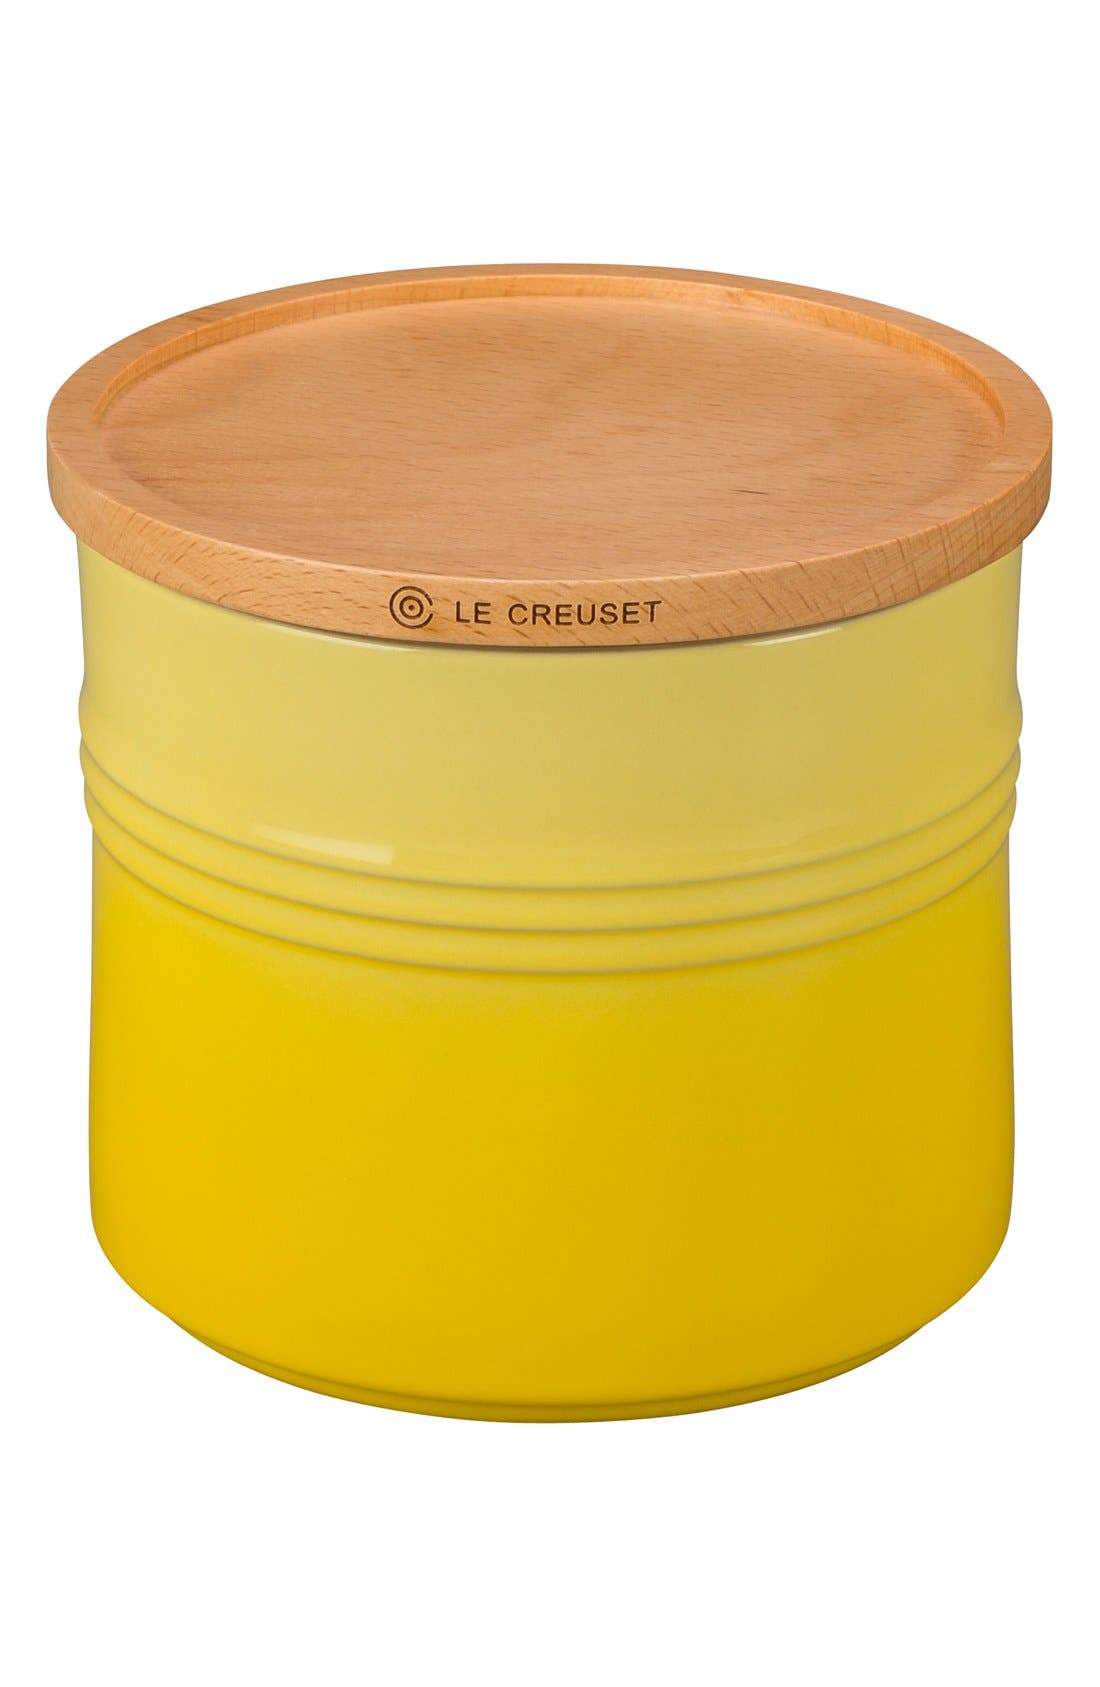 Glazed Stoneware 1 1/2 Quart Storage Canister with Wooden Lid,                             Main thumbnail 1, color,                             SOLEIL